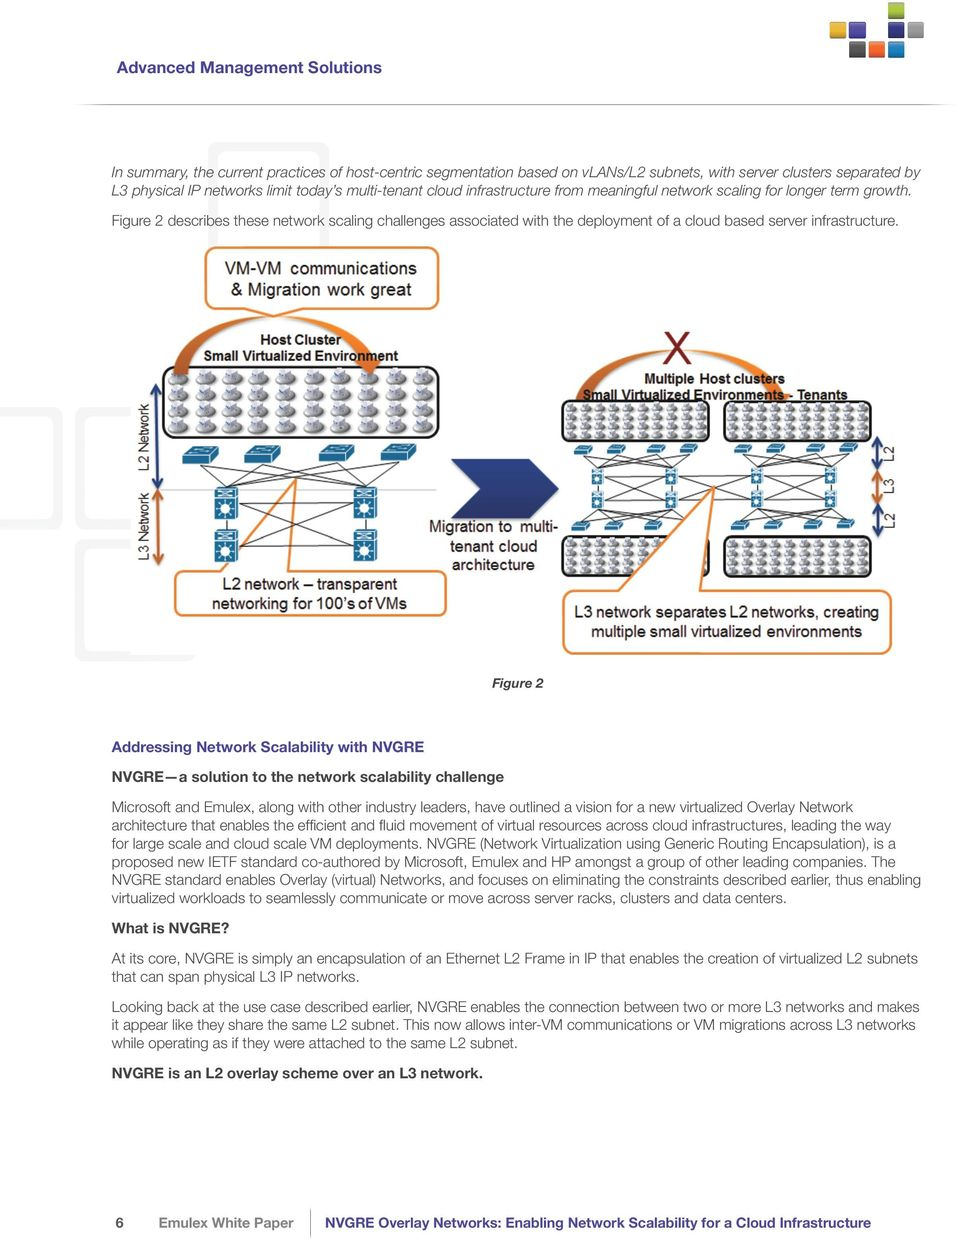 Figure 2 Addressing Network Scalability with NVGRE NVGRE a solution to the network scalability challenge Microsoft and Emulex, along with other industry leaders, have outlined a vision for a new